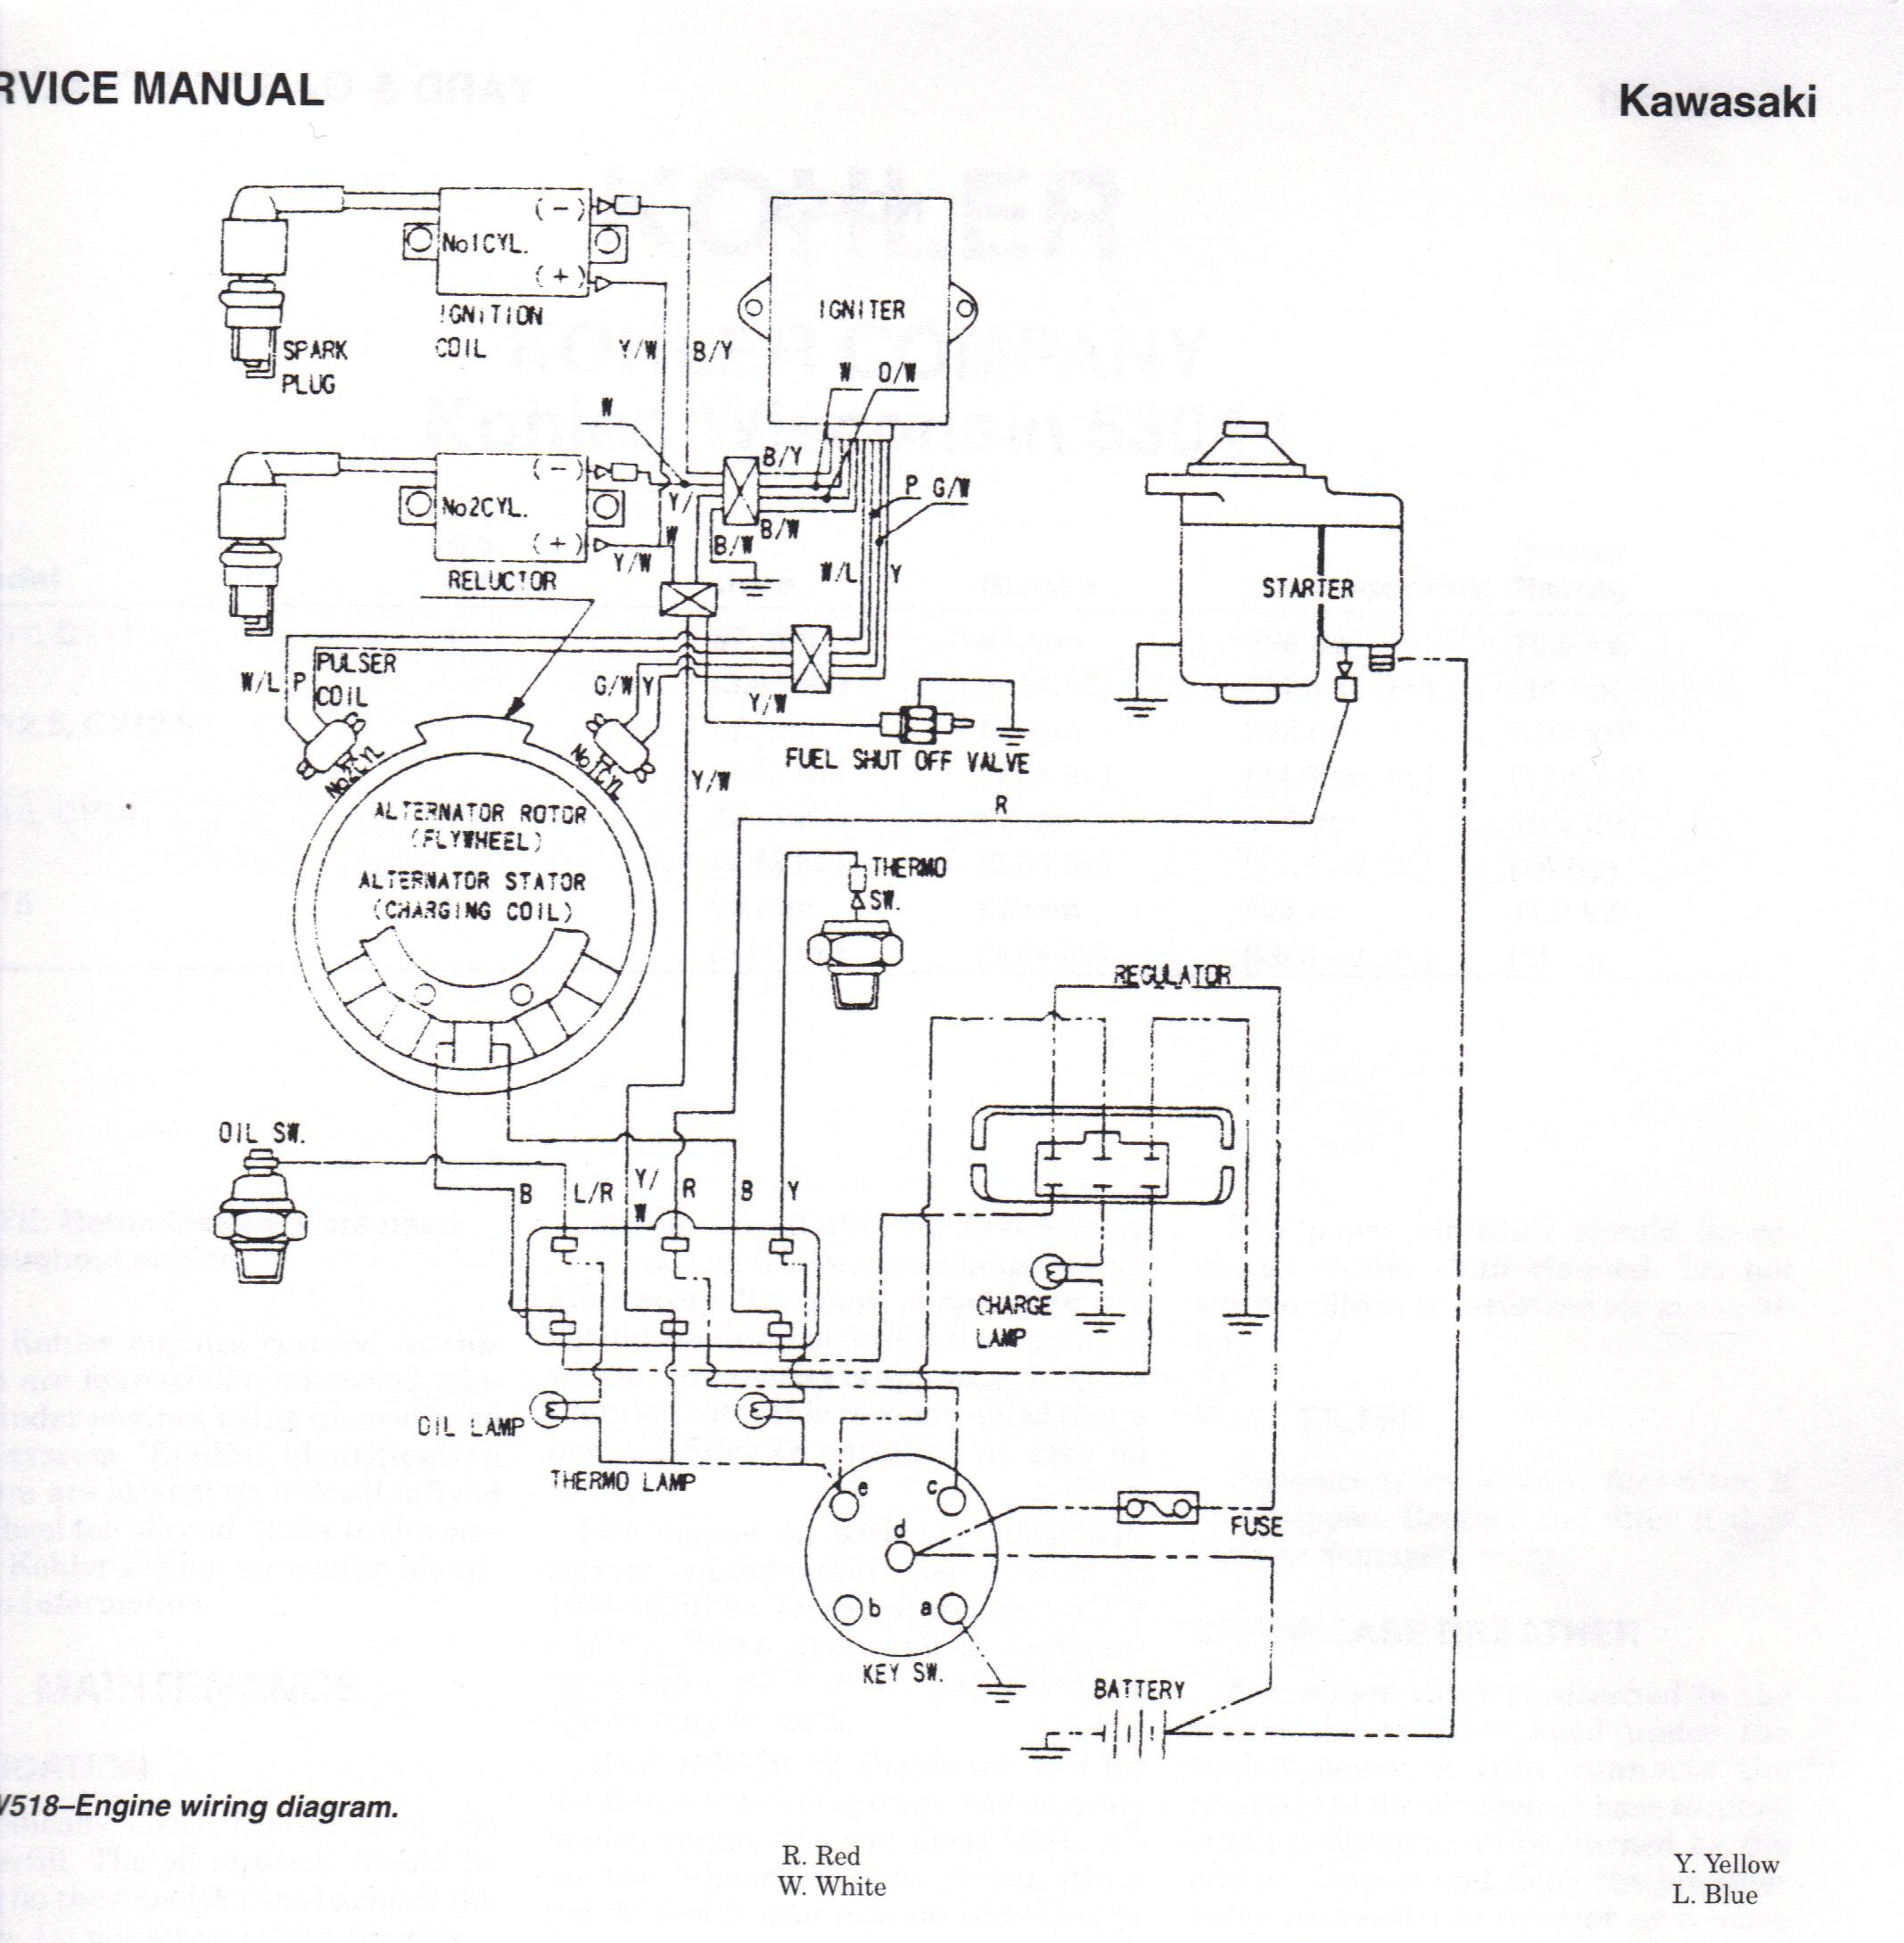 8 horse kohler small engine wiring diagram